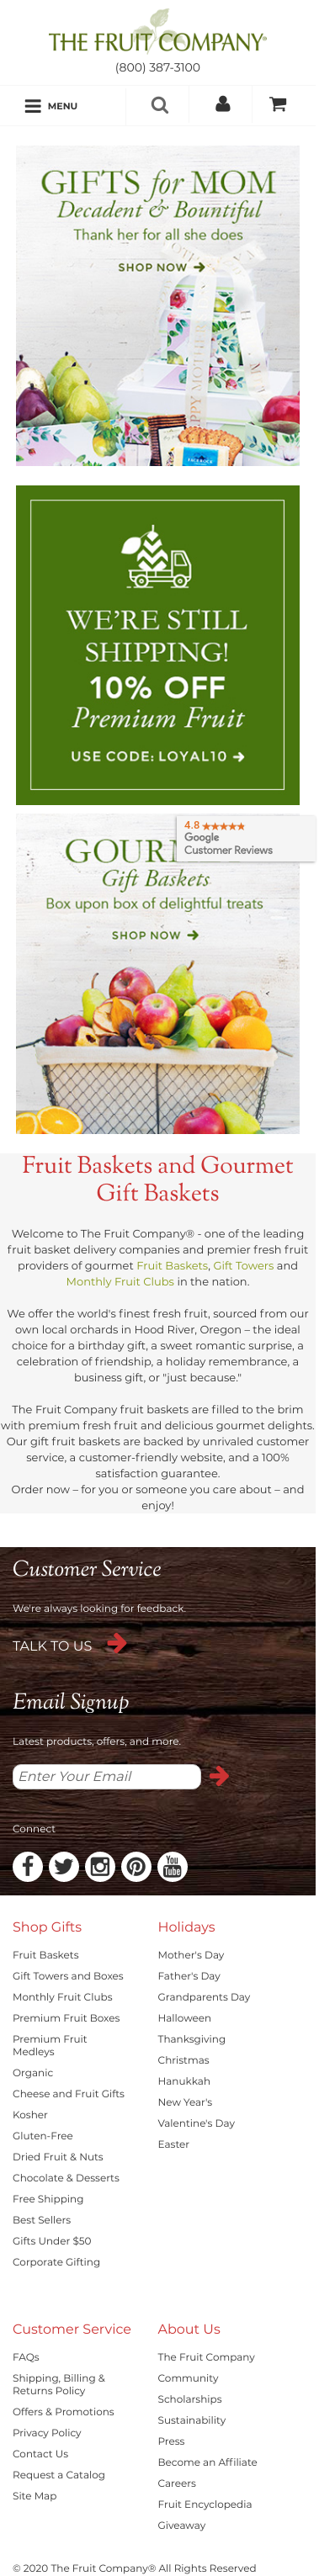 The Fruit Company Coupon